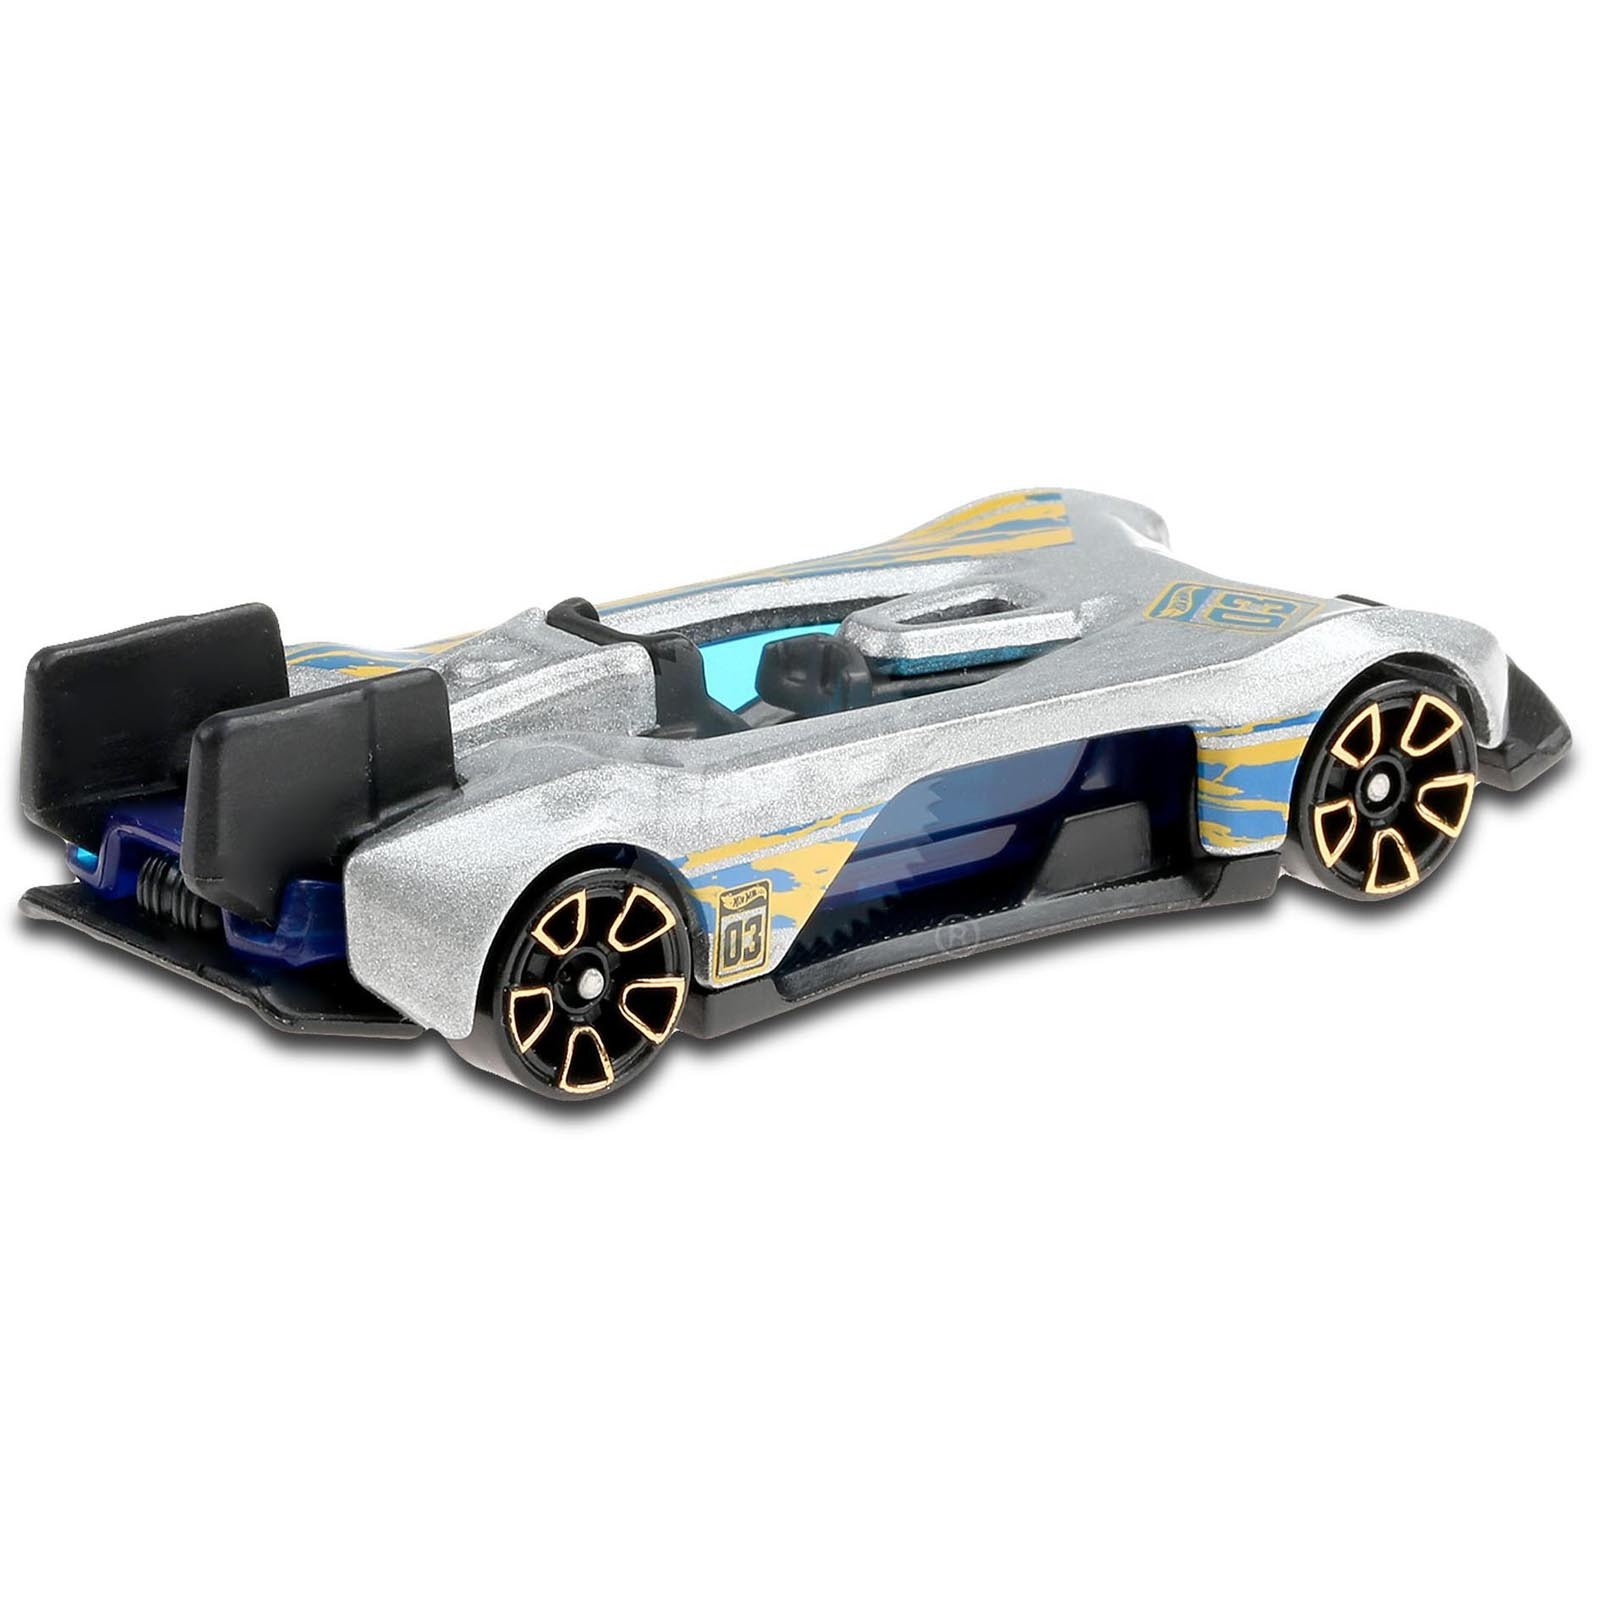 Hot Wheels - Electro Silhouette - GHC31